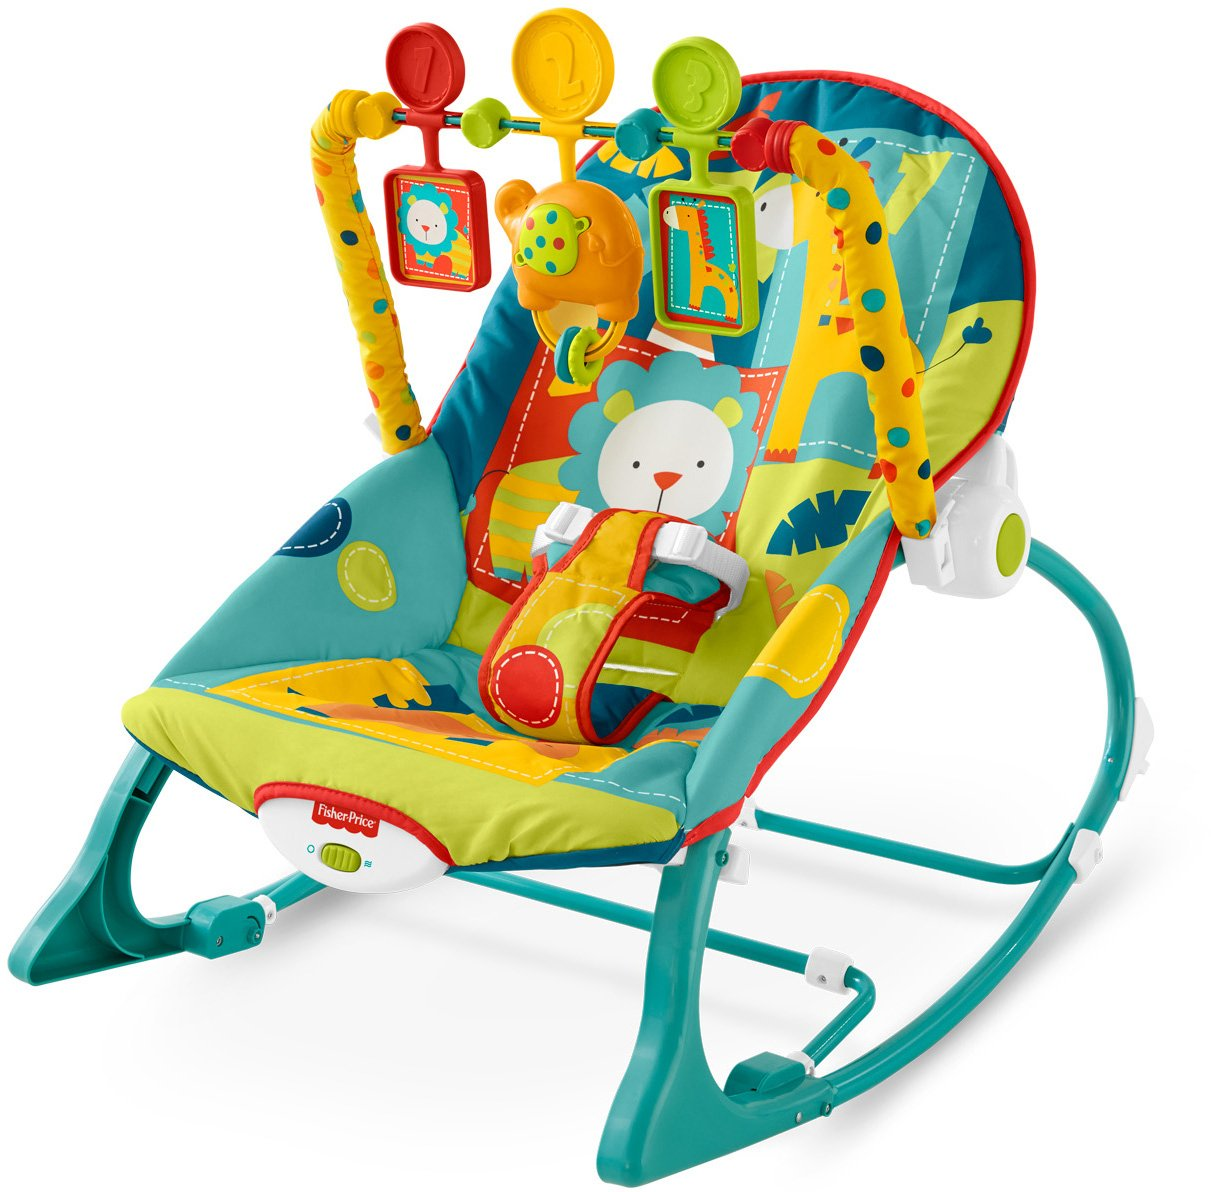 Charmant Baby Bouncer Chair Infant Bounce Rocker Toddler Portable Sleeper Seat Toy  New